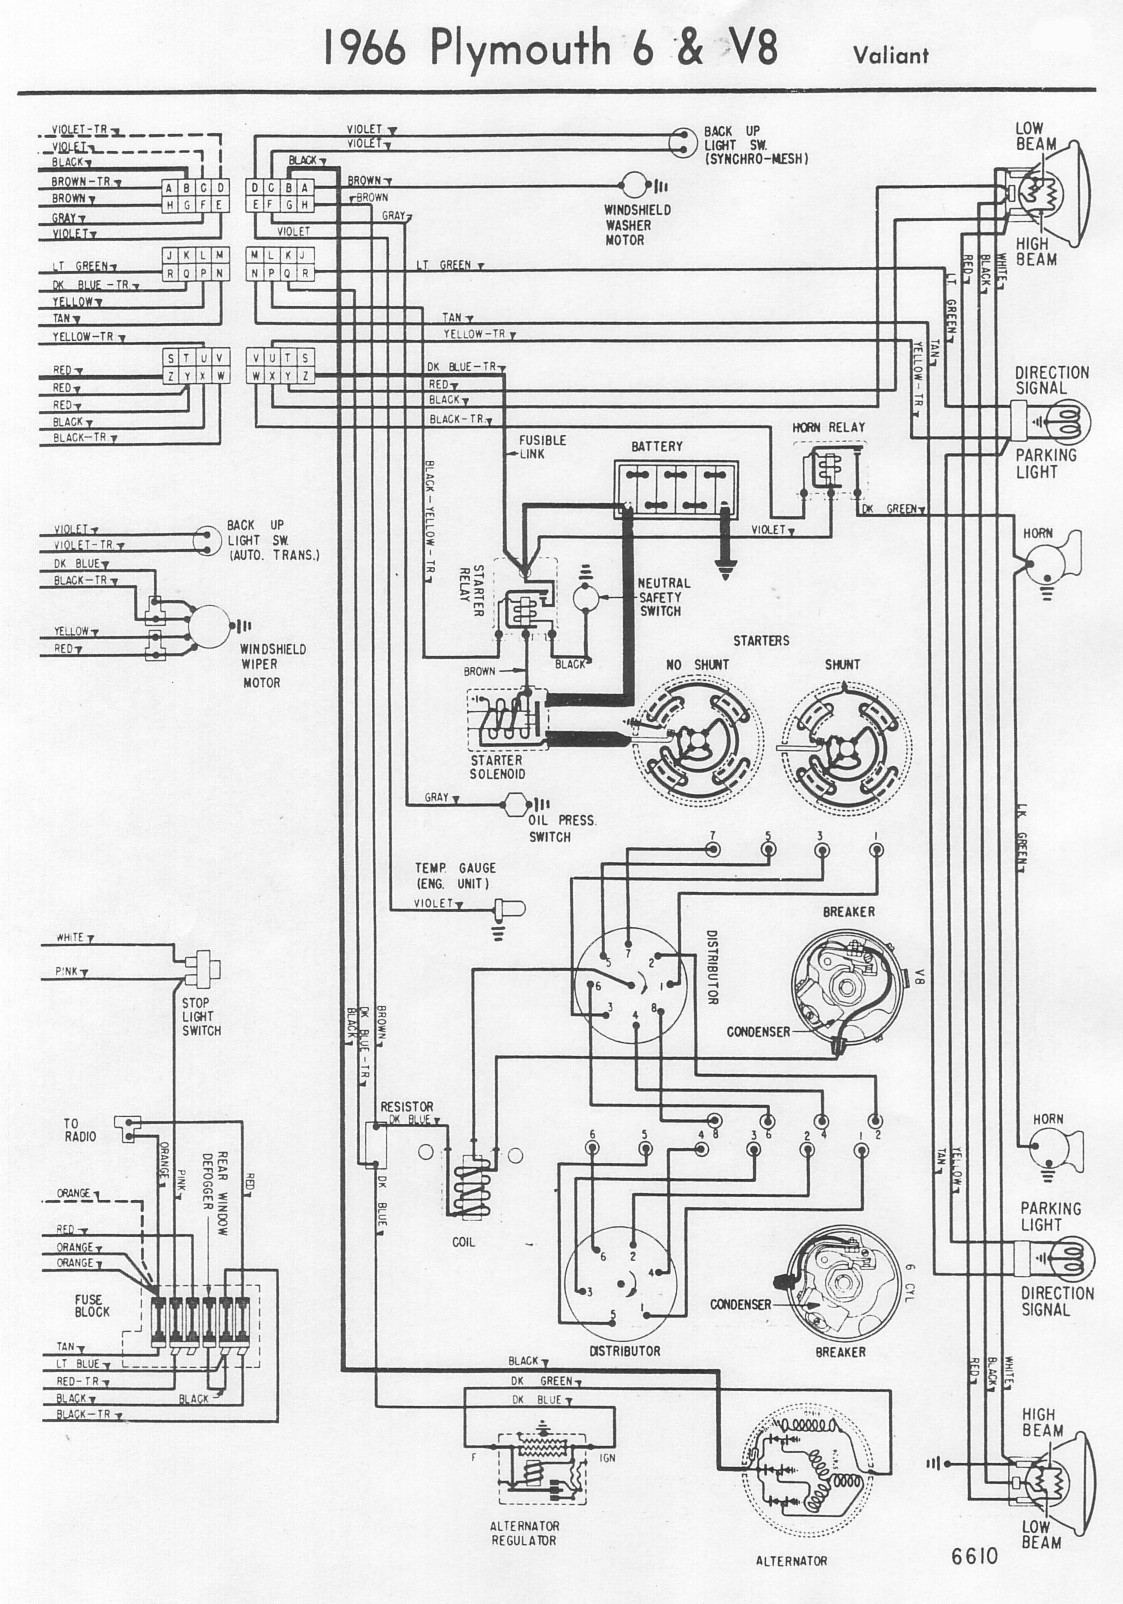 66ValiantB wiring diagrams 1971 cuda air conditioning wiring diagram at nearapp.co